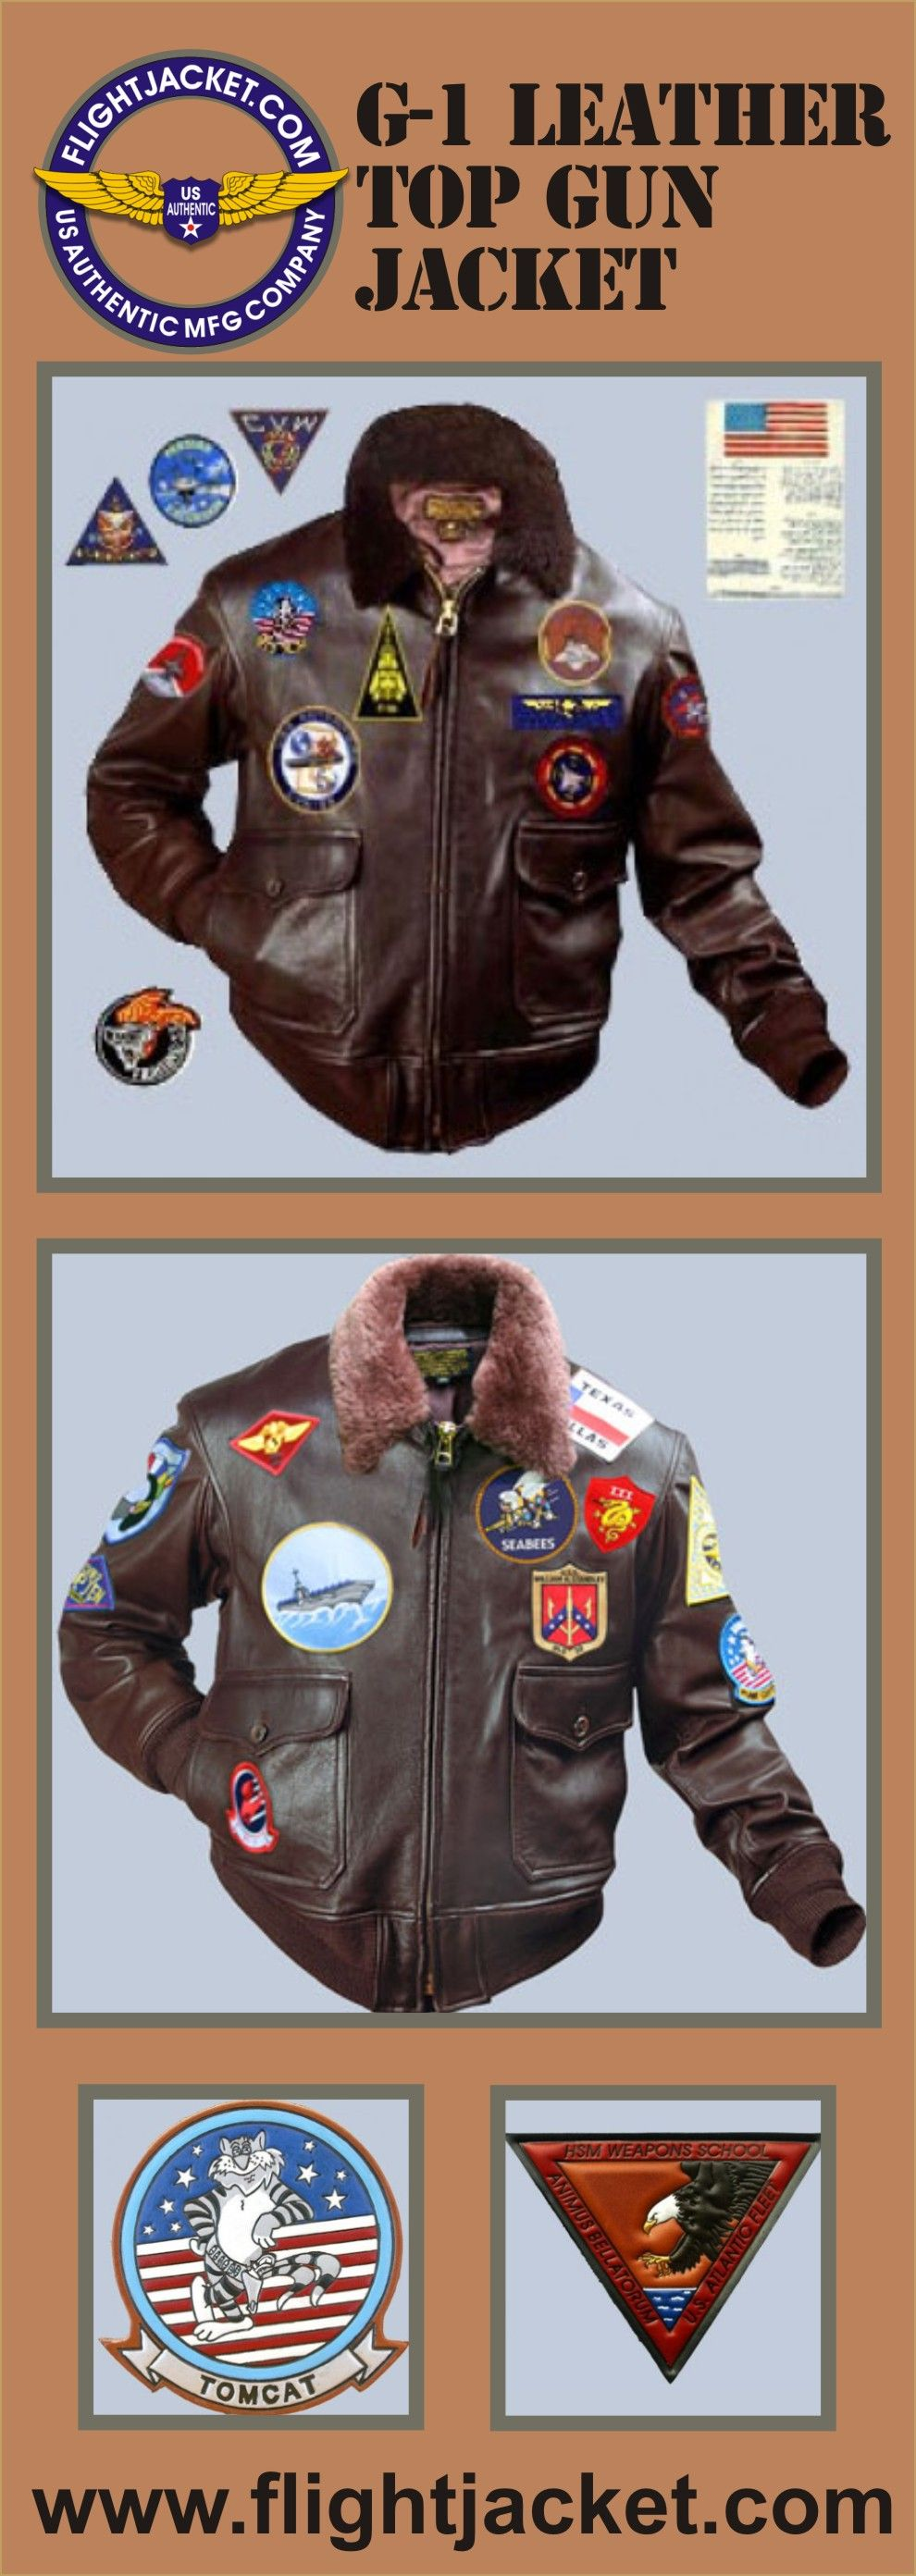 The G 1 Navy Top Gun Flight Jacket As Seen In The Movie